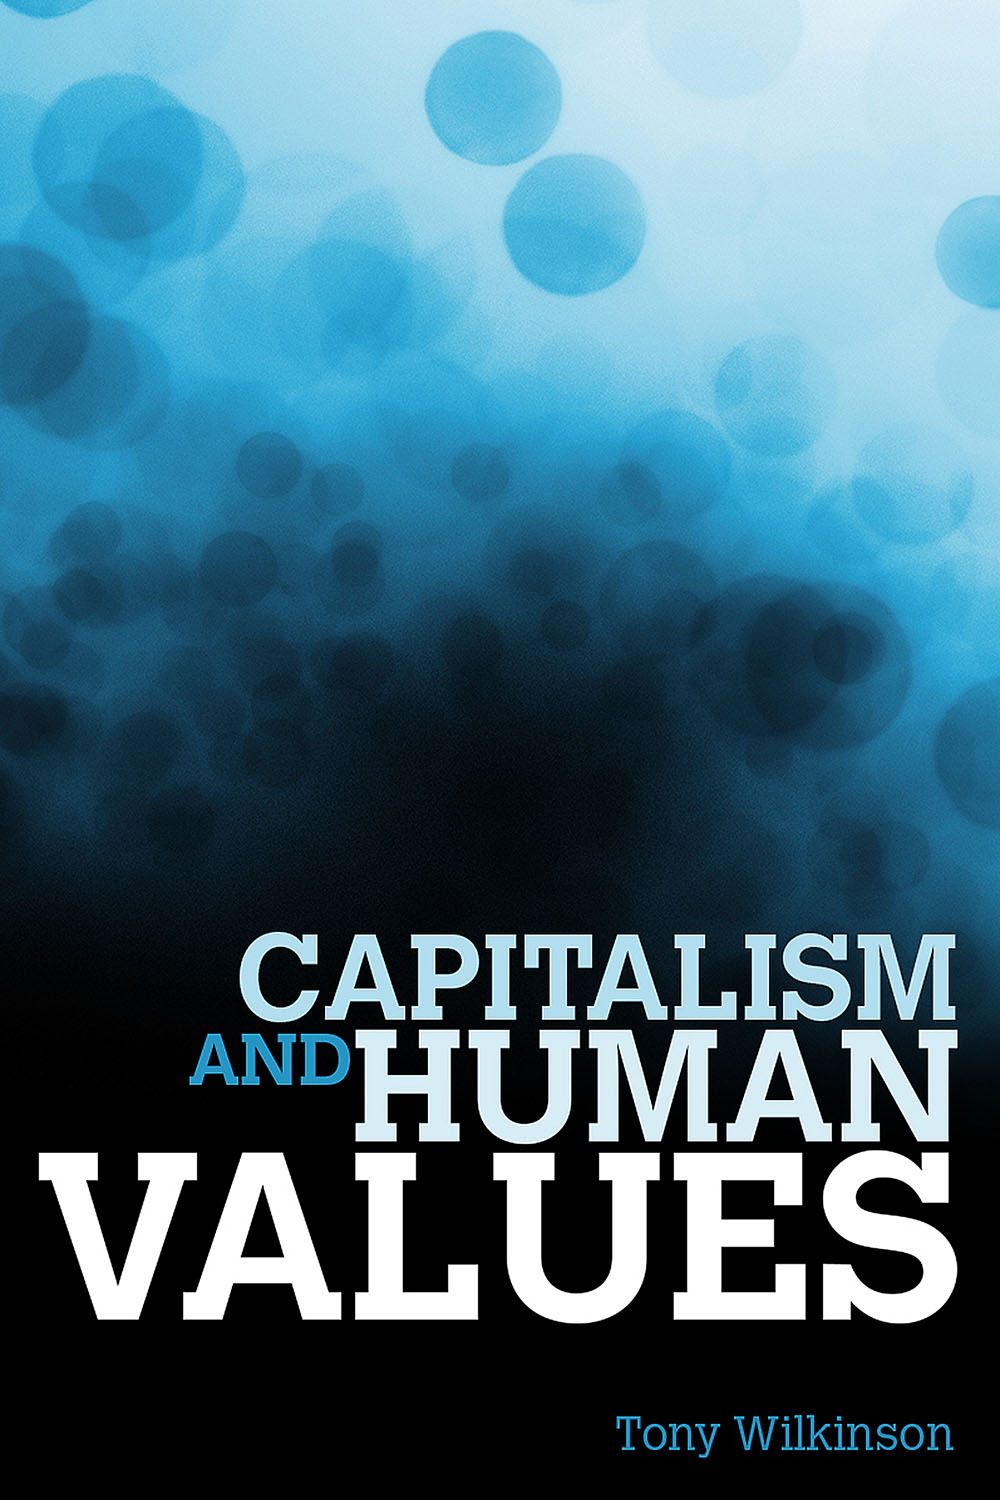 Wilkinson, Tony - Capitalism and Human Values, ebook